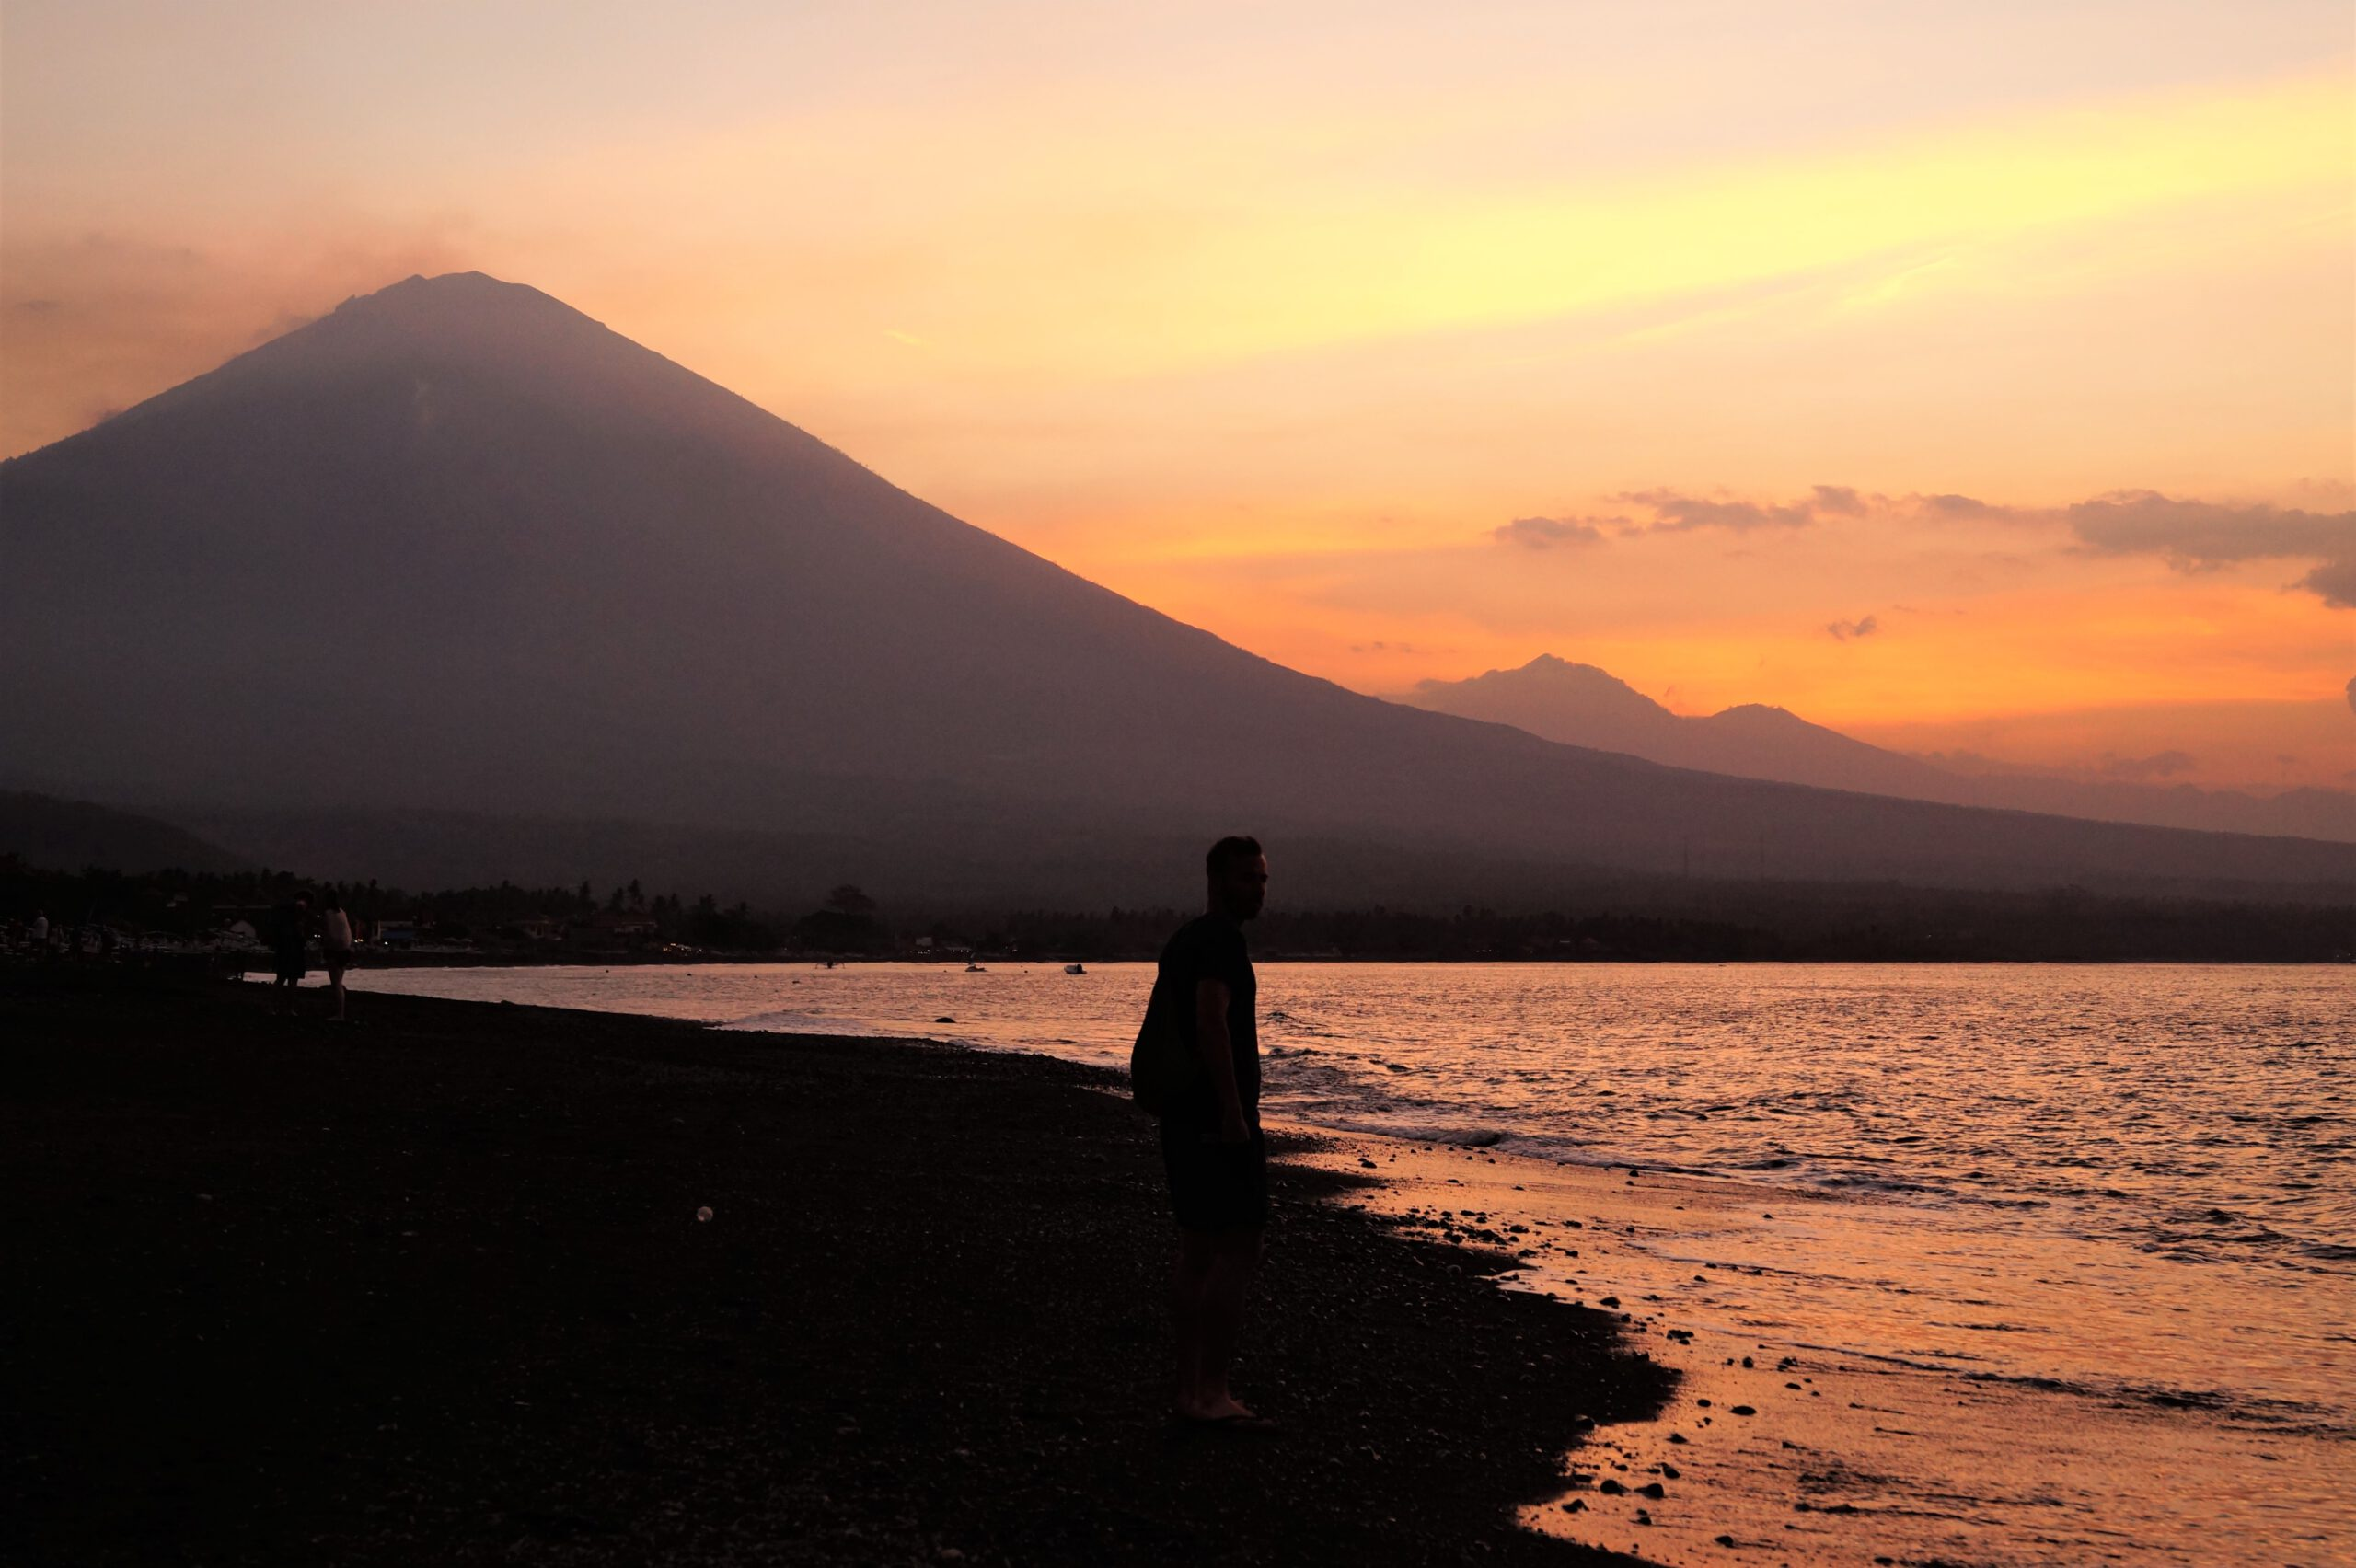 Bali Qué ver en Amed Volcán Agung scaled - Travel guide to Amed and Mount Agung; the treasure of Bali